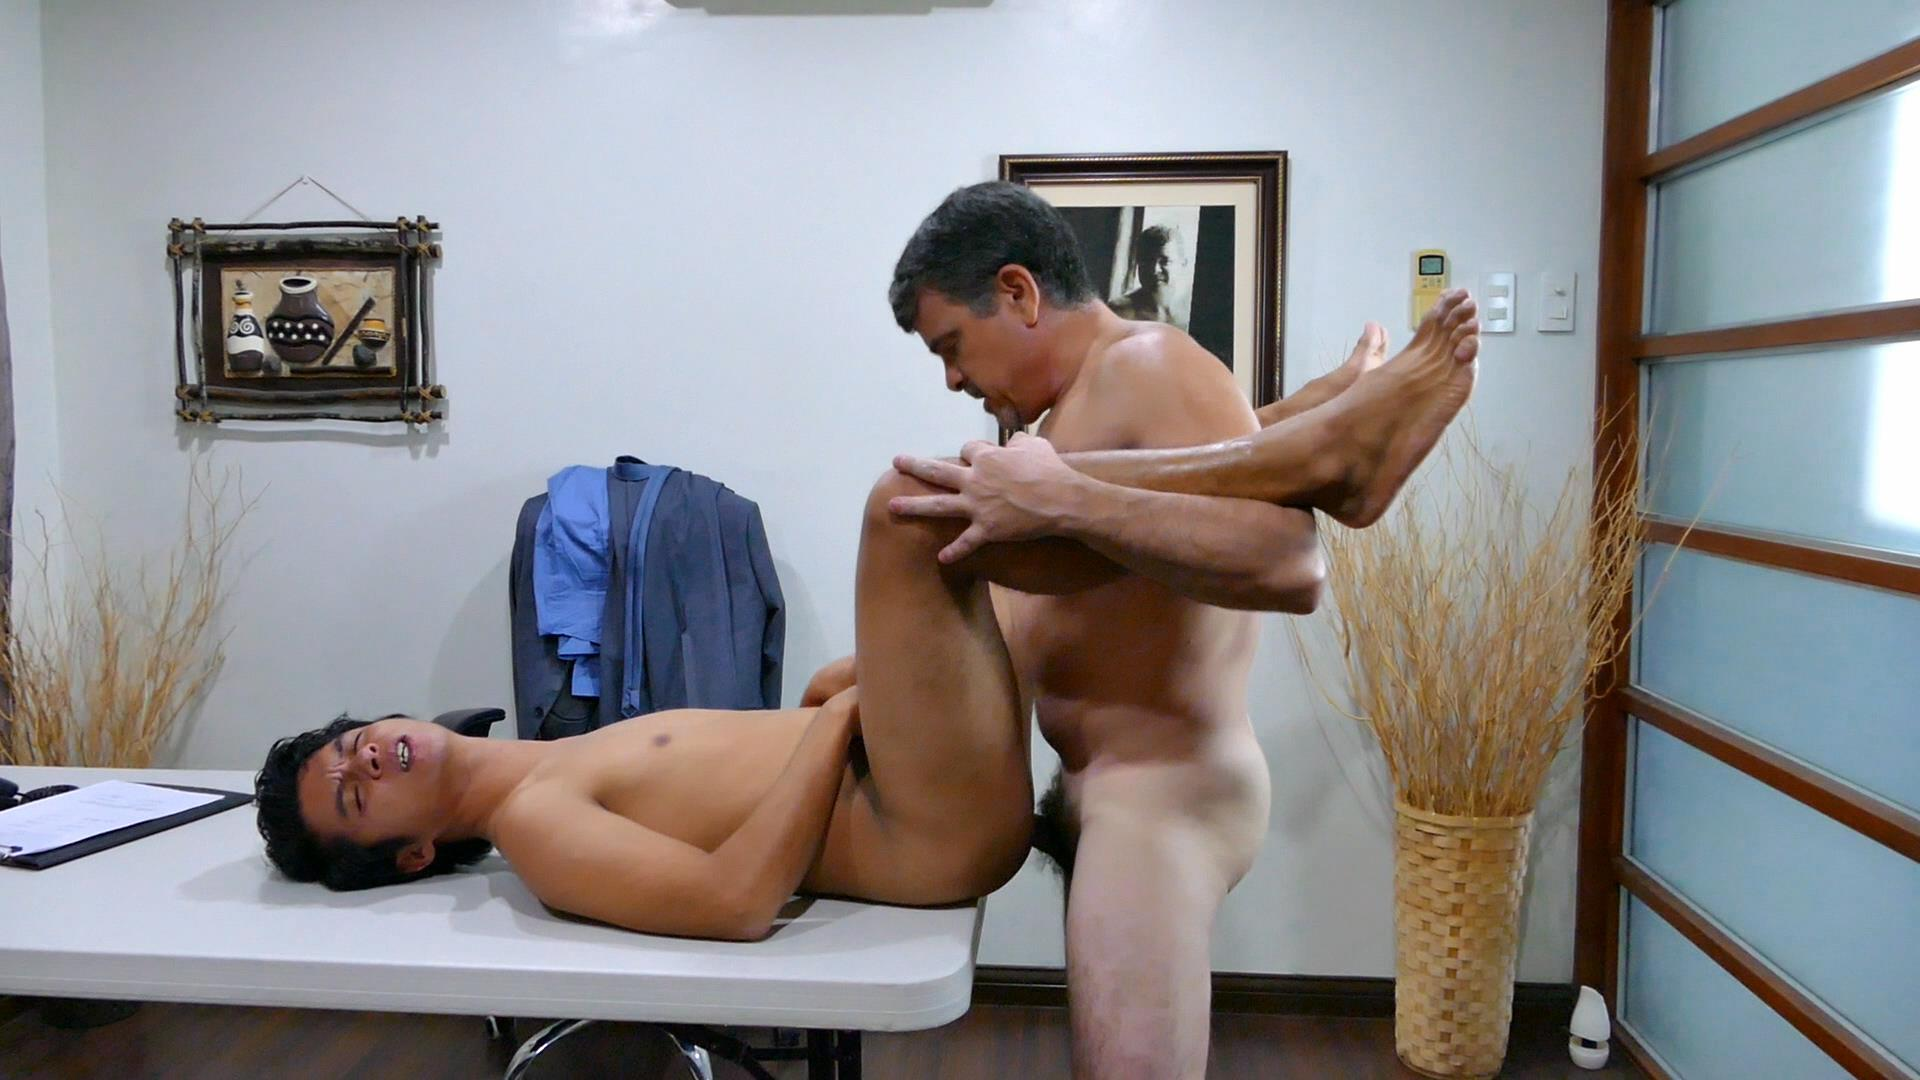 Daddys-Asians-Asian-Twink-Gets-Barebacked-By-Daddy-11 Daddy Breeds An Asian Boy Ass During A Job Interview